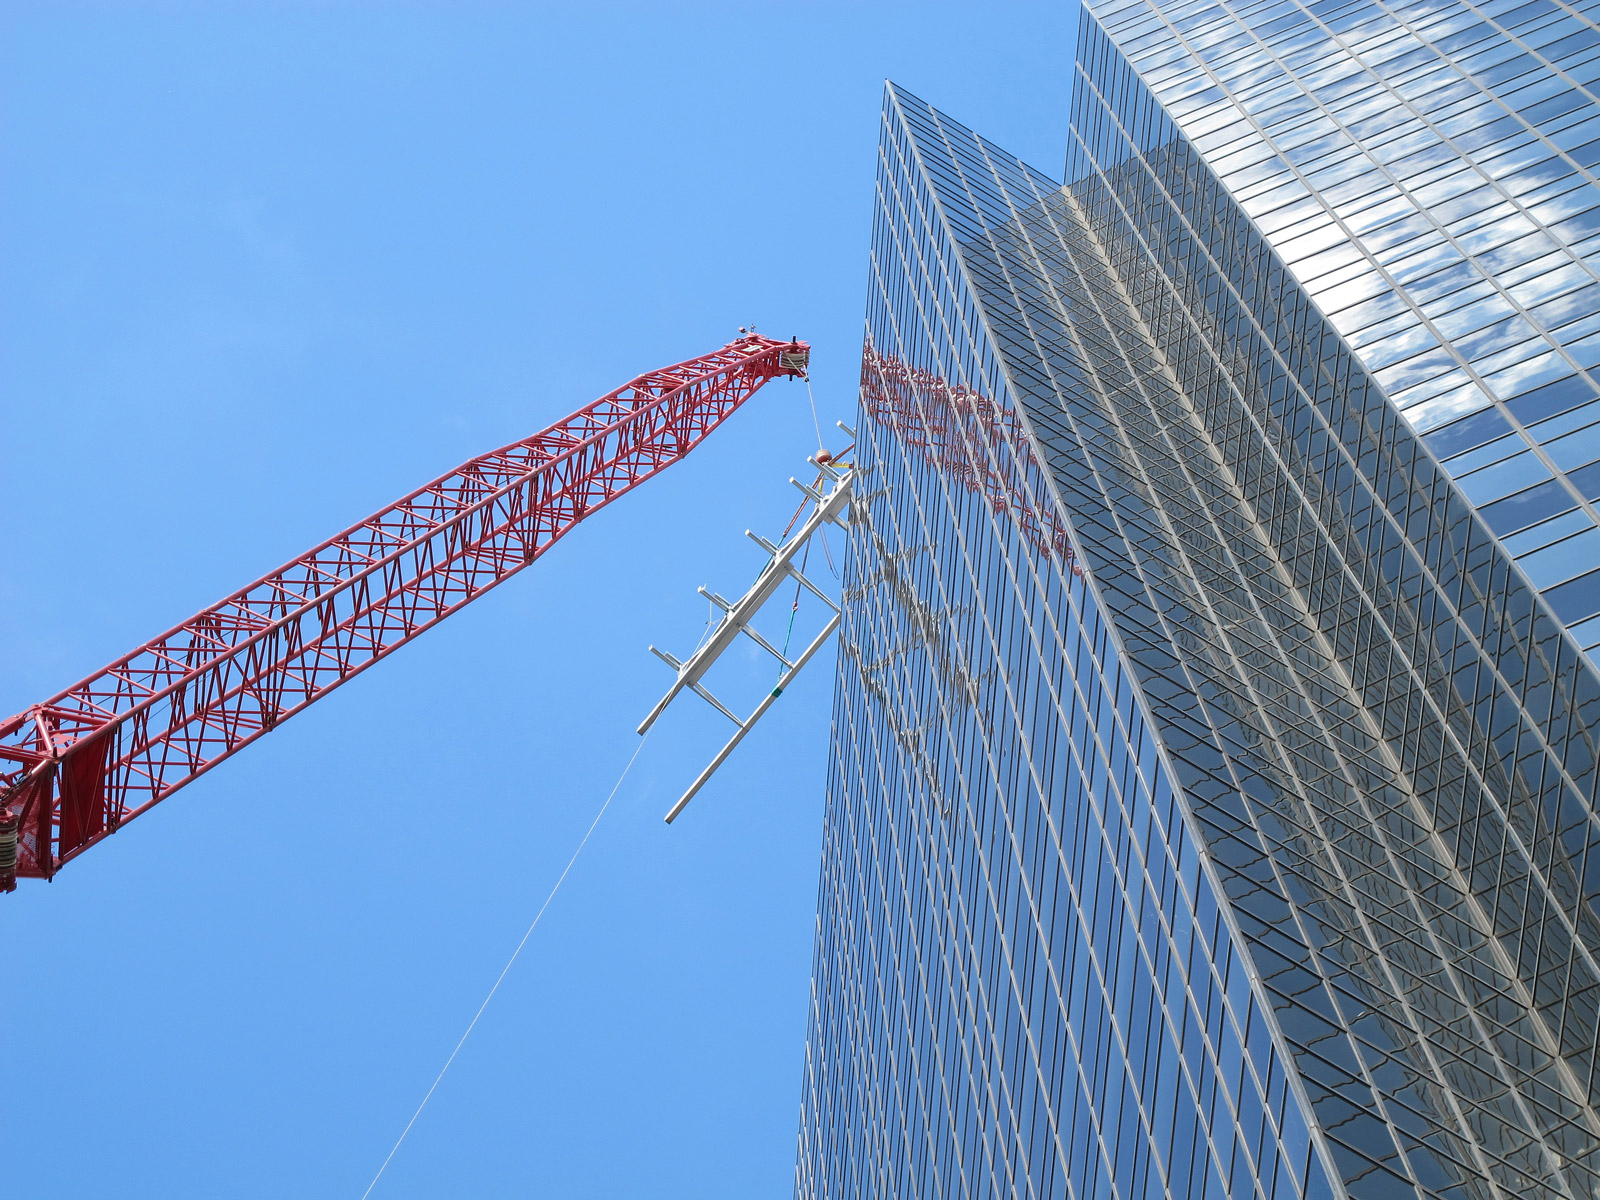 View from ground of crane lifting steel support base structure up to roof of office tower.